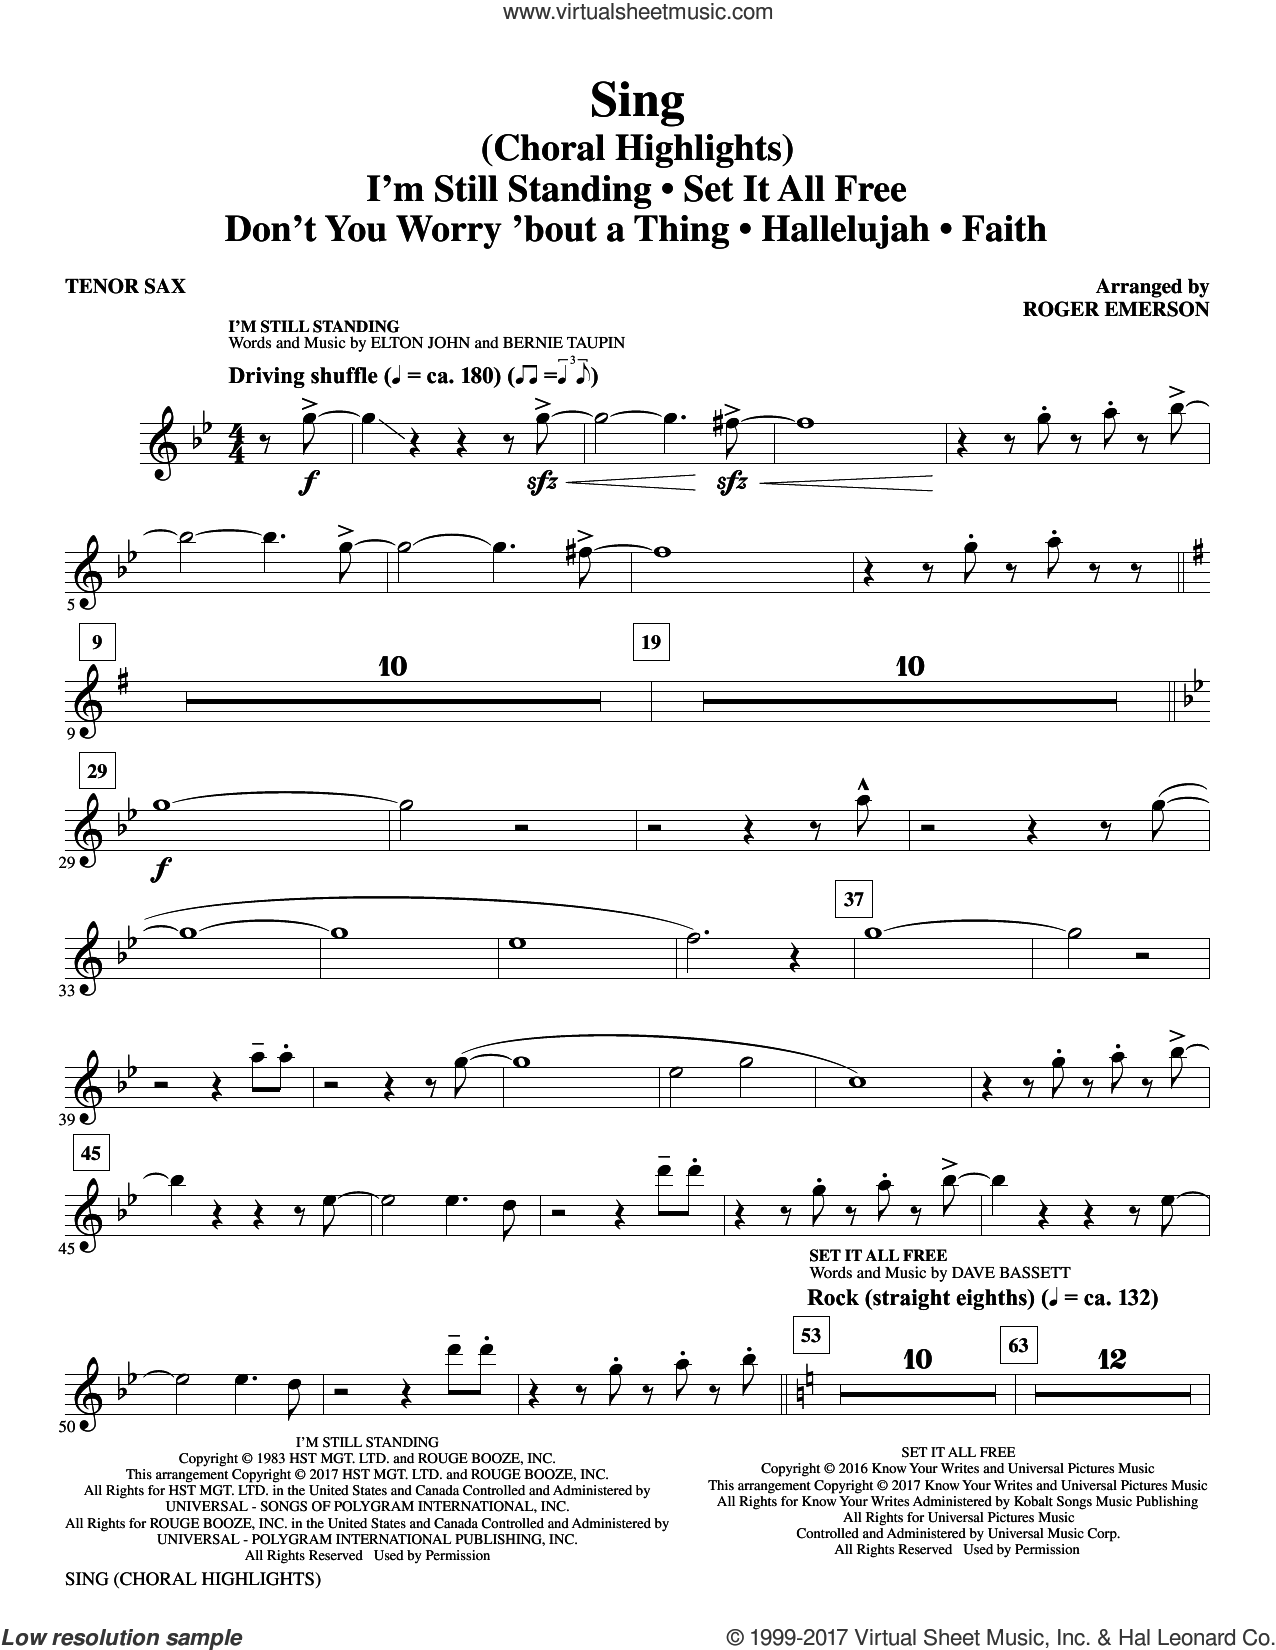 Sing (Choral Highlights) sheet music for orchestra/band (Bb tenor saxophone) by Leonard Cohen, Roger Emerson, Justin Timberlake & Matt Morris featuring Charlie Sexton and Lee DeWyze, intermediate skill level